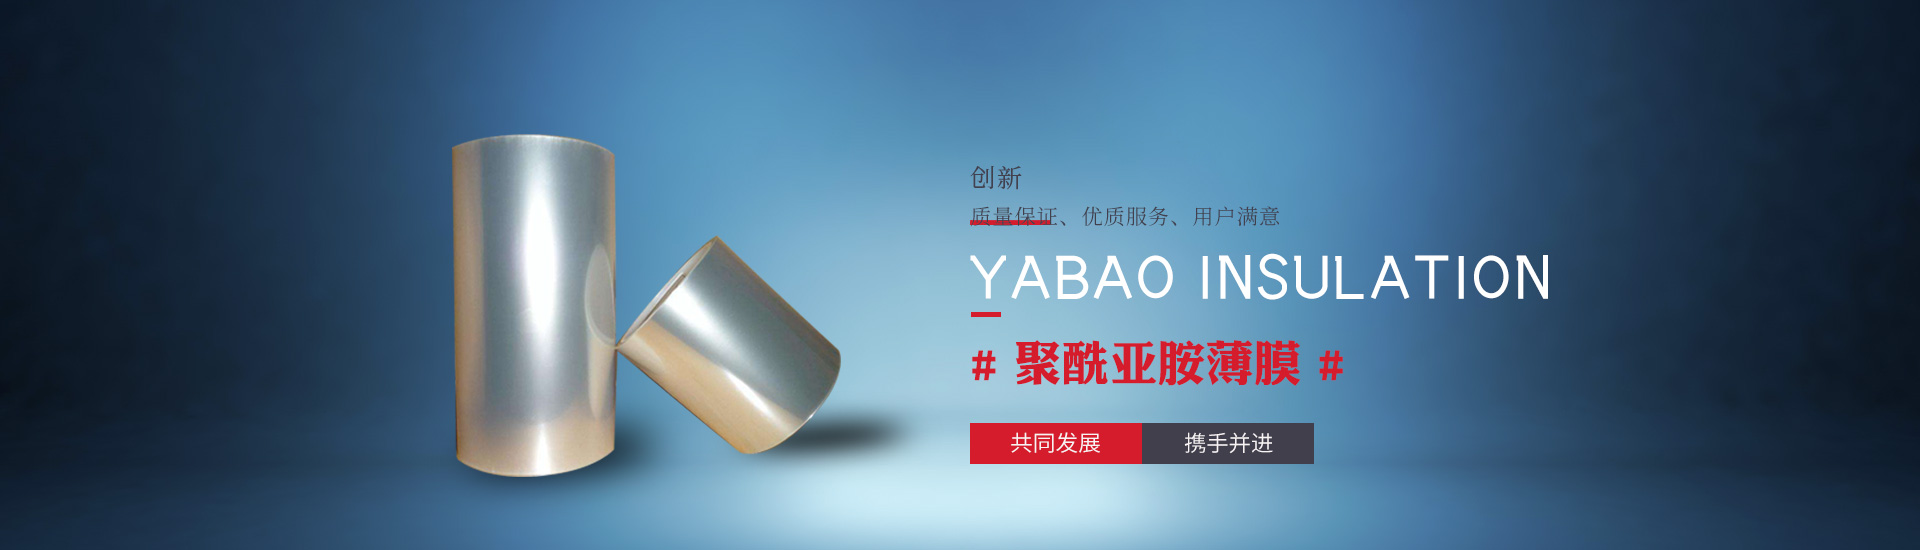 http://www.china-yabao.com/data/upload/202006/20200609094831_558.jpg